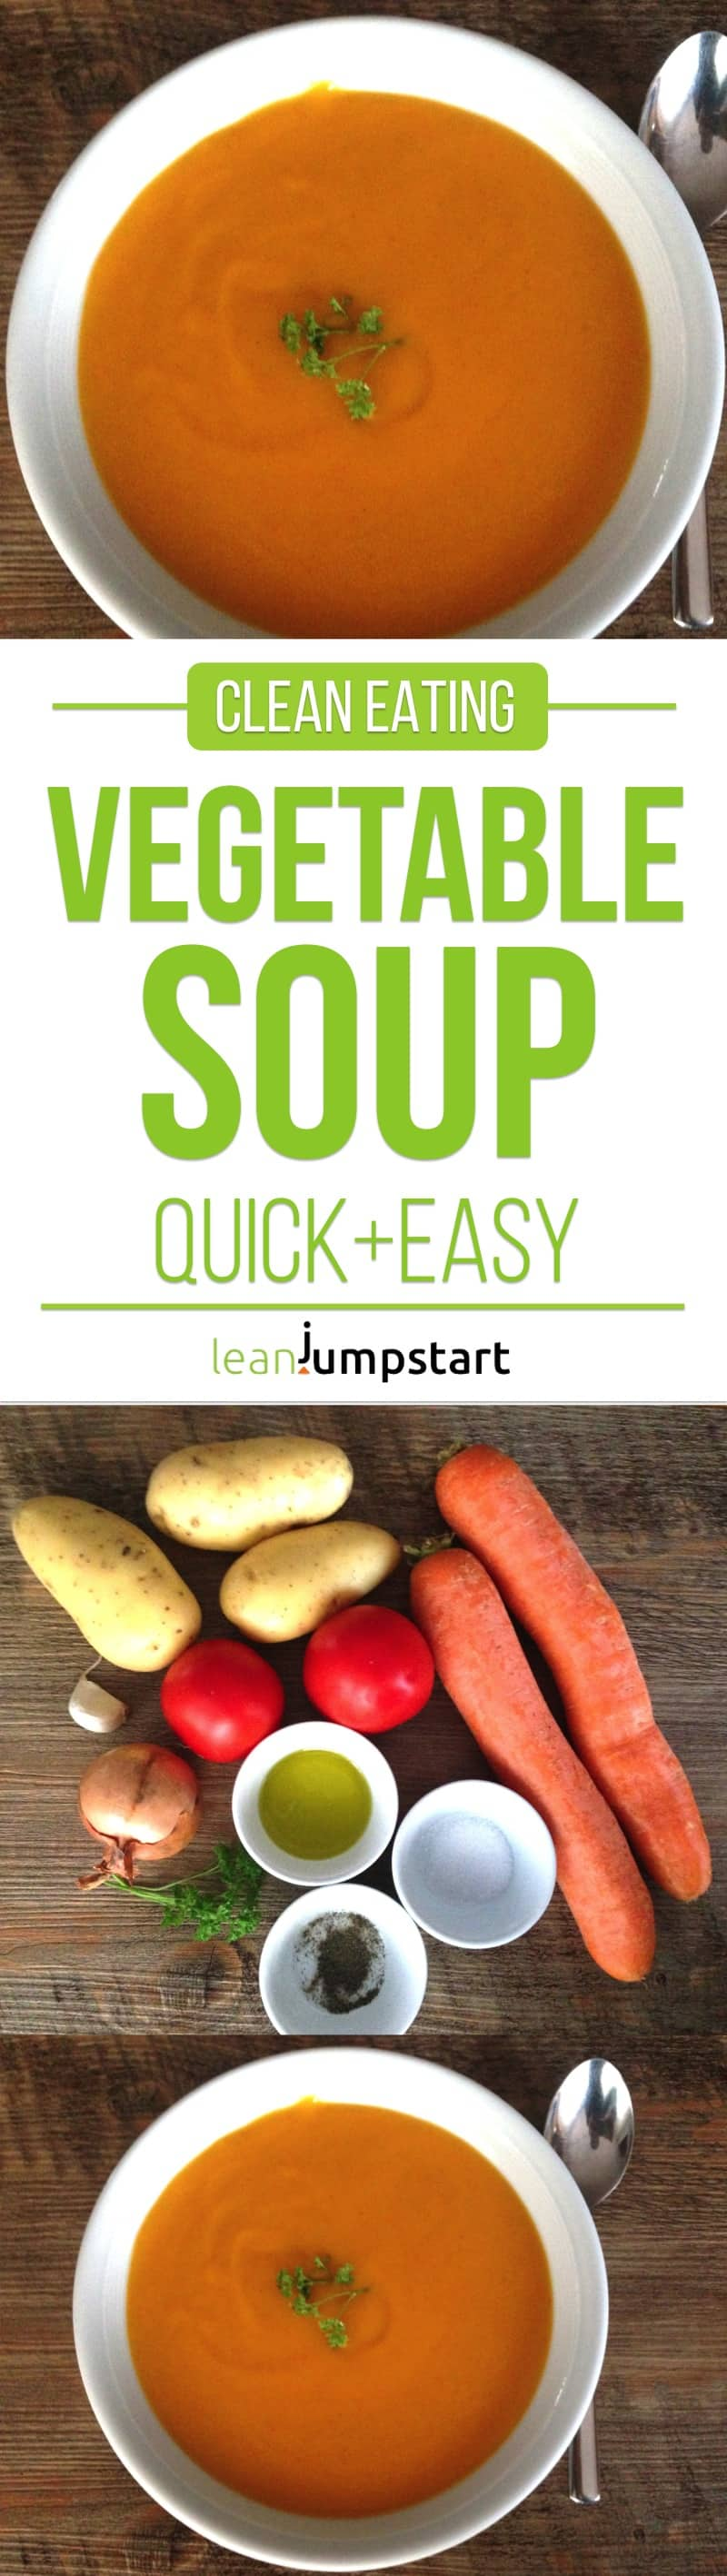 clean eating vegetable soup: quick, creamy, lean and easy. Click through!